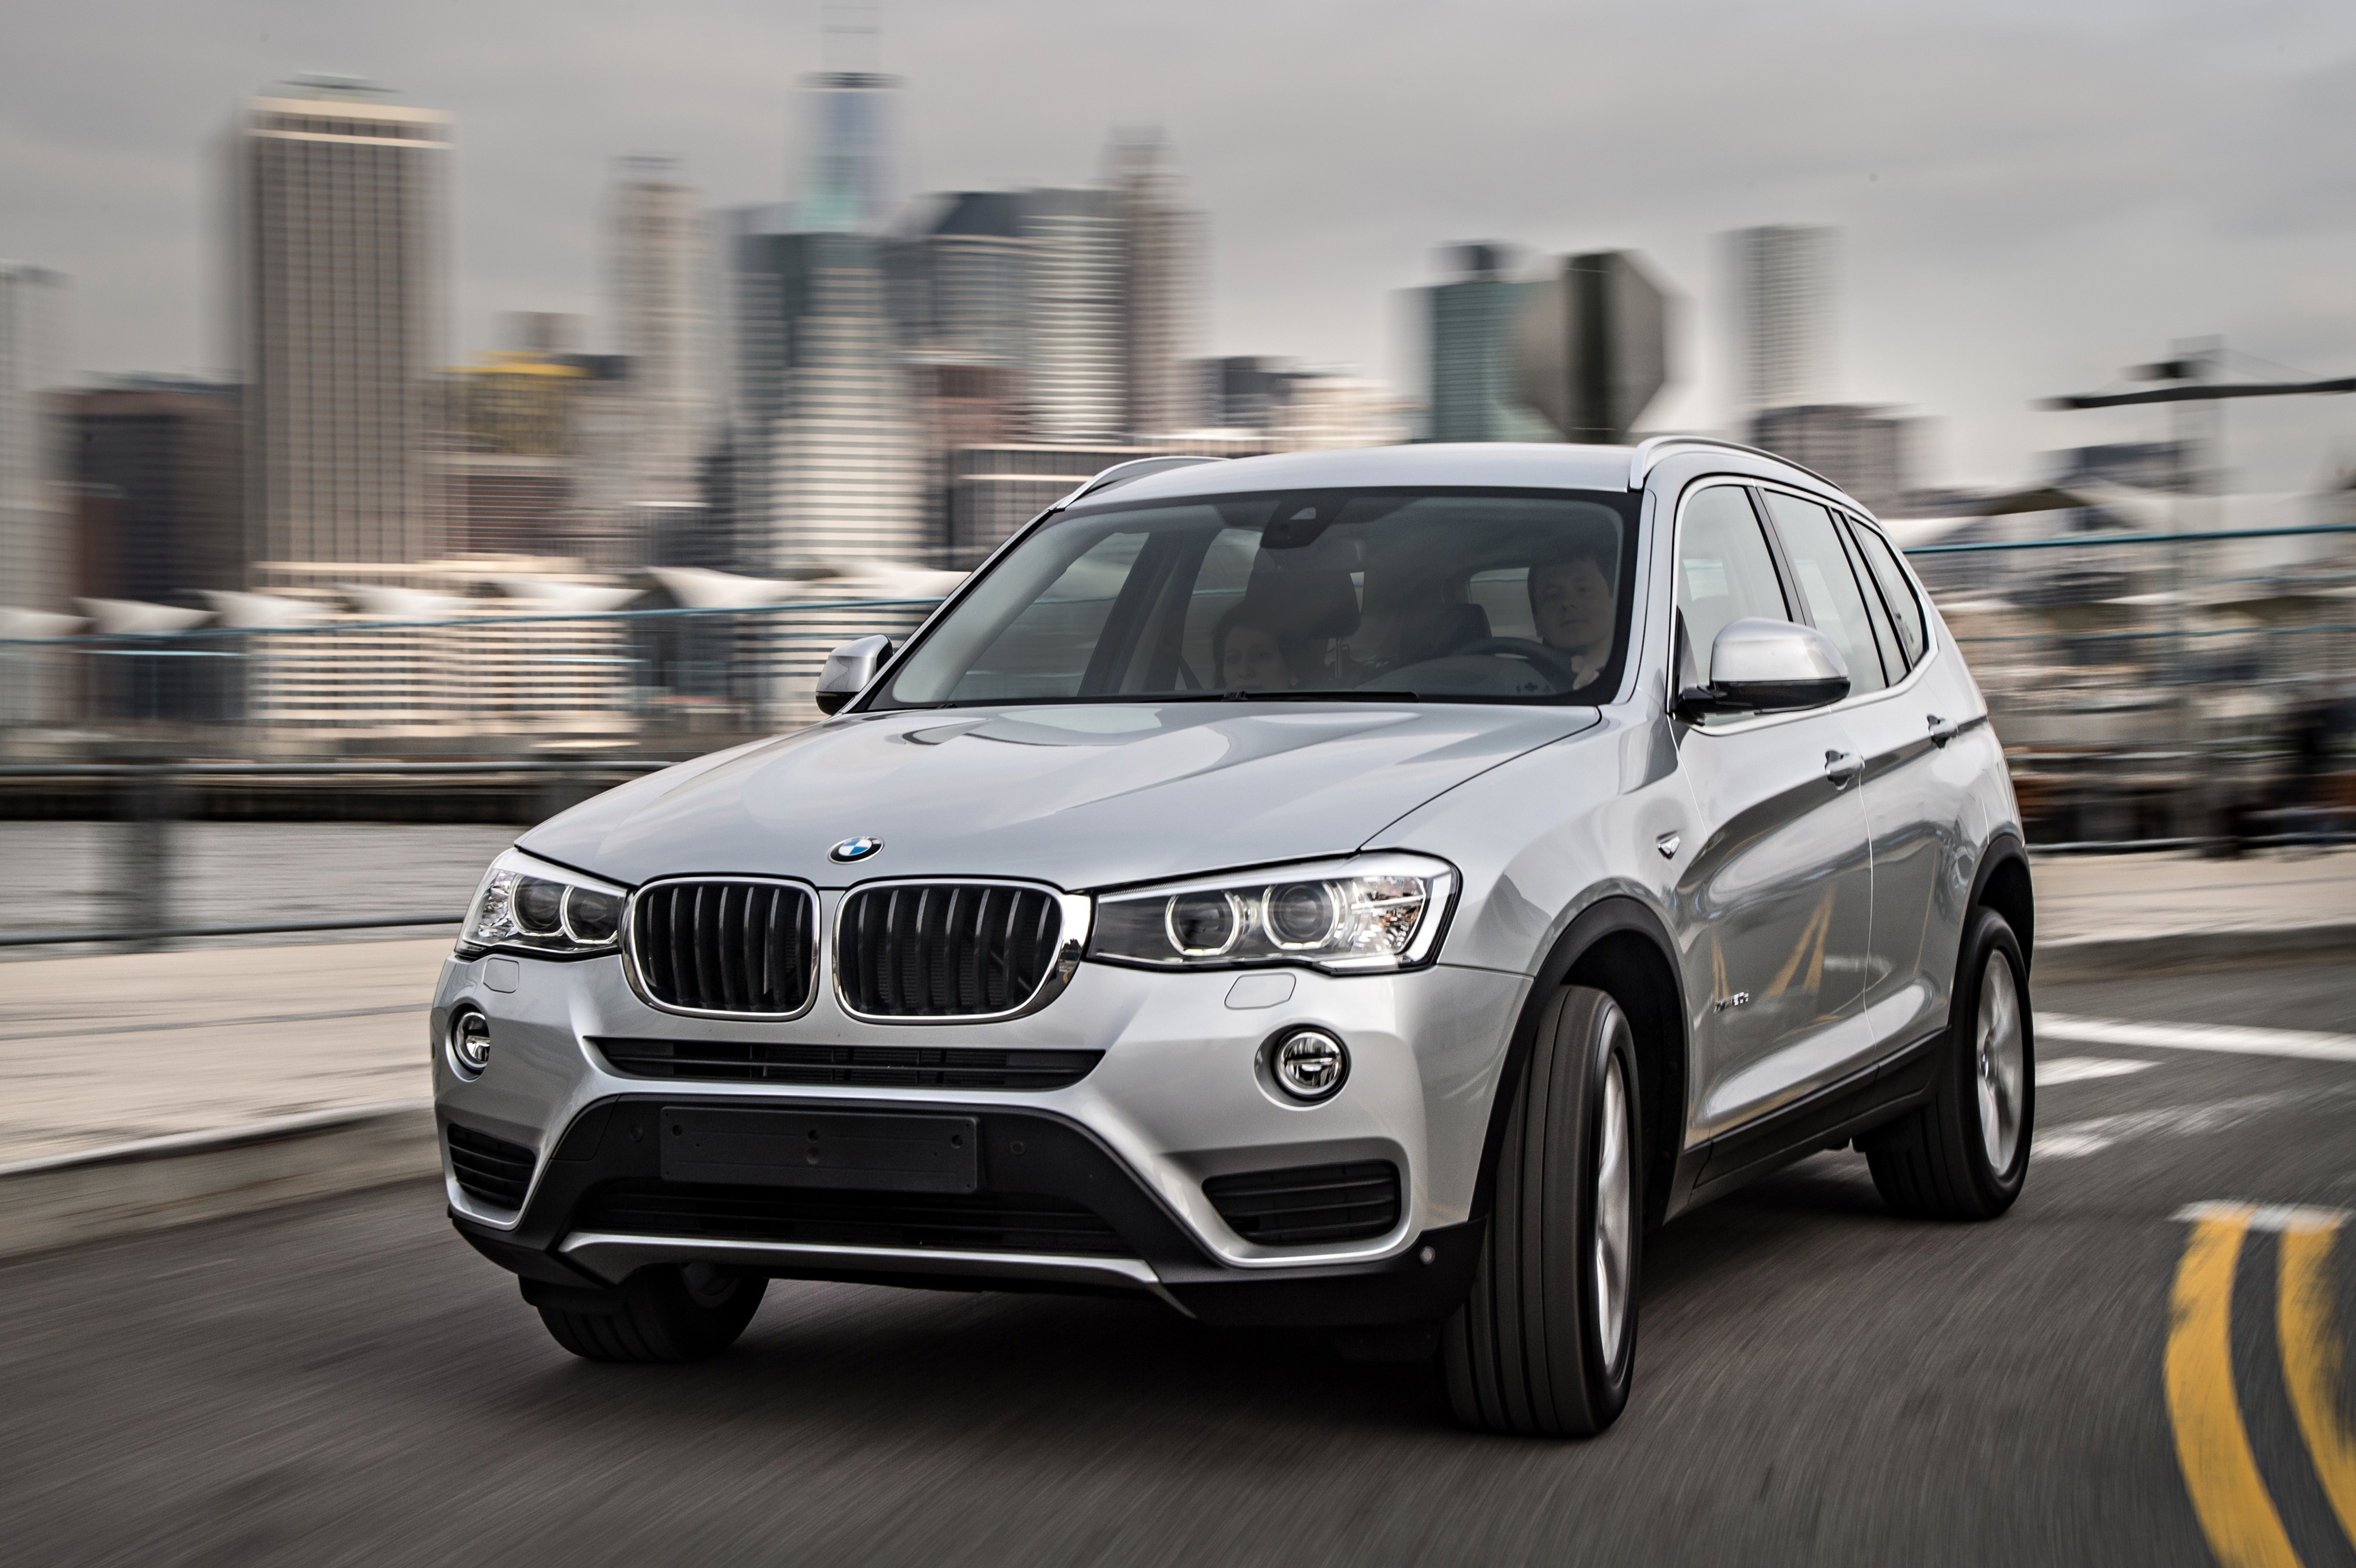 BMW X3 xDrive20d 2014 photo - 3